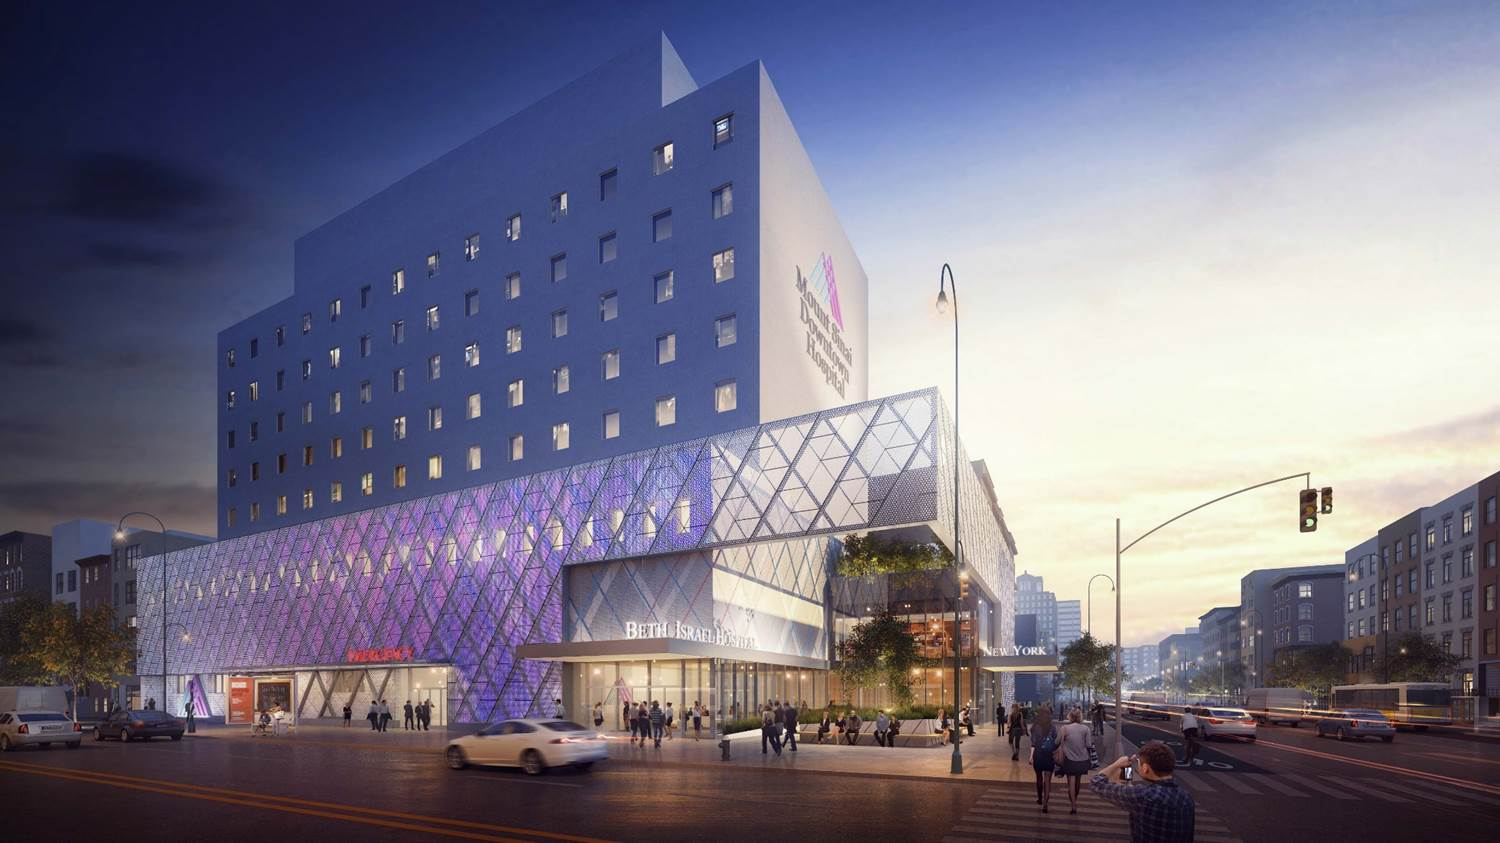 Rendering of the new Mount Sinai Beth Israel Hospital located at 14th Street and Second Avenue. Image Source: Mount Sinai Health Systems